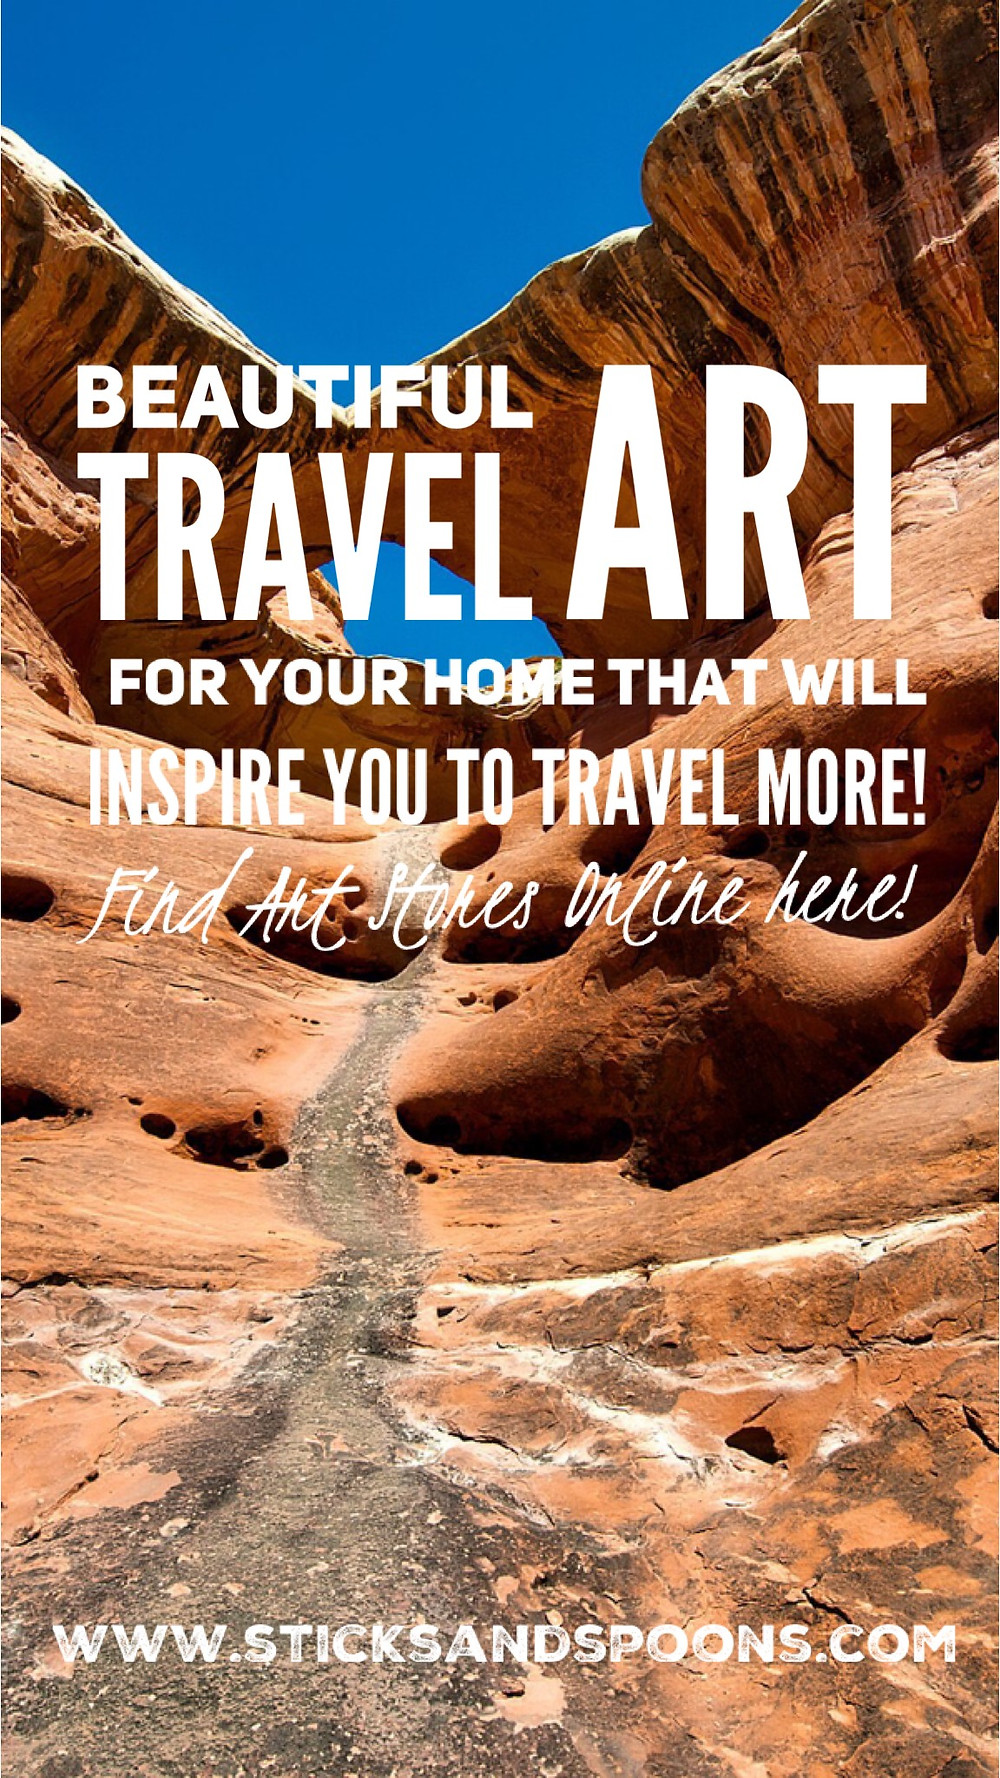 Find Beautiful Travel Art, Travel Photography for your home online! In our list of Art Stores Online you'll find Travel Inspiration and shops that sell Travel Art.